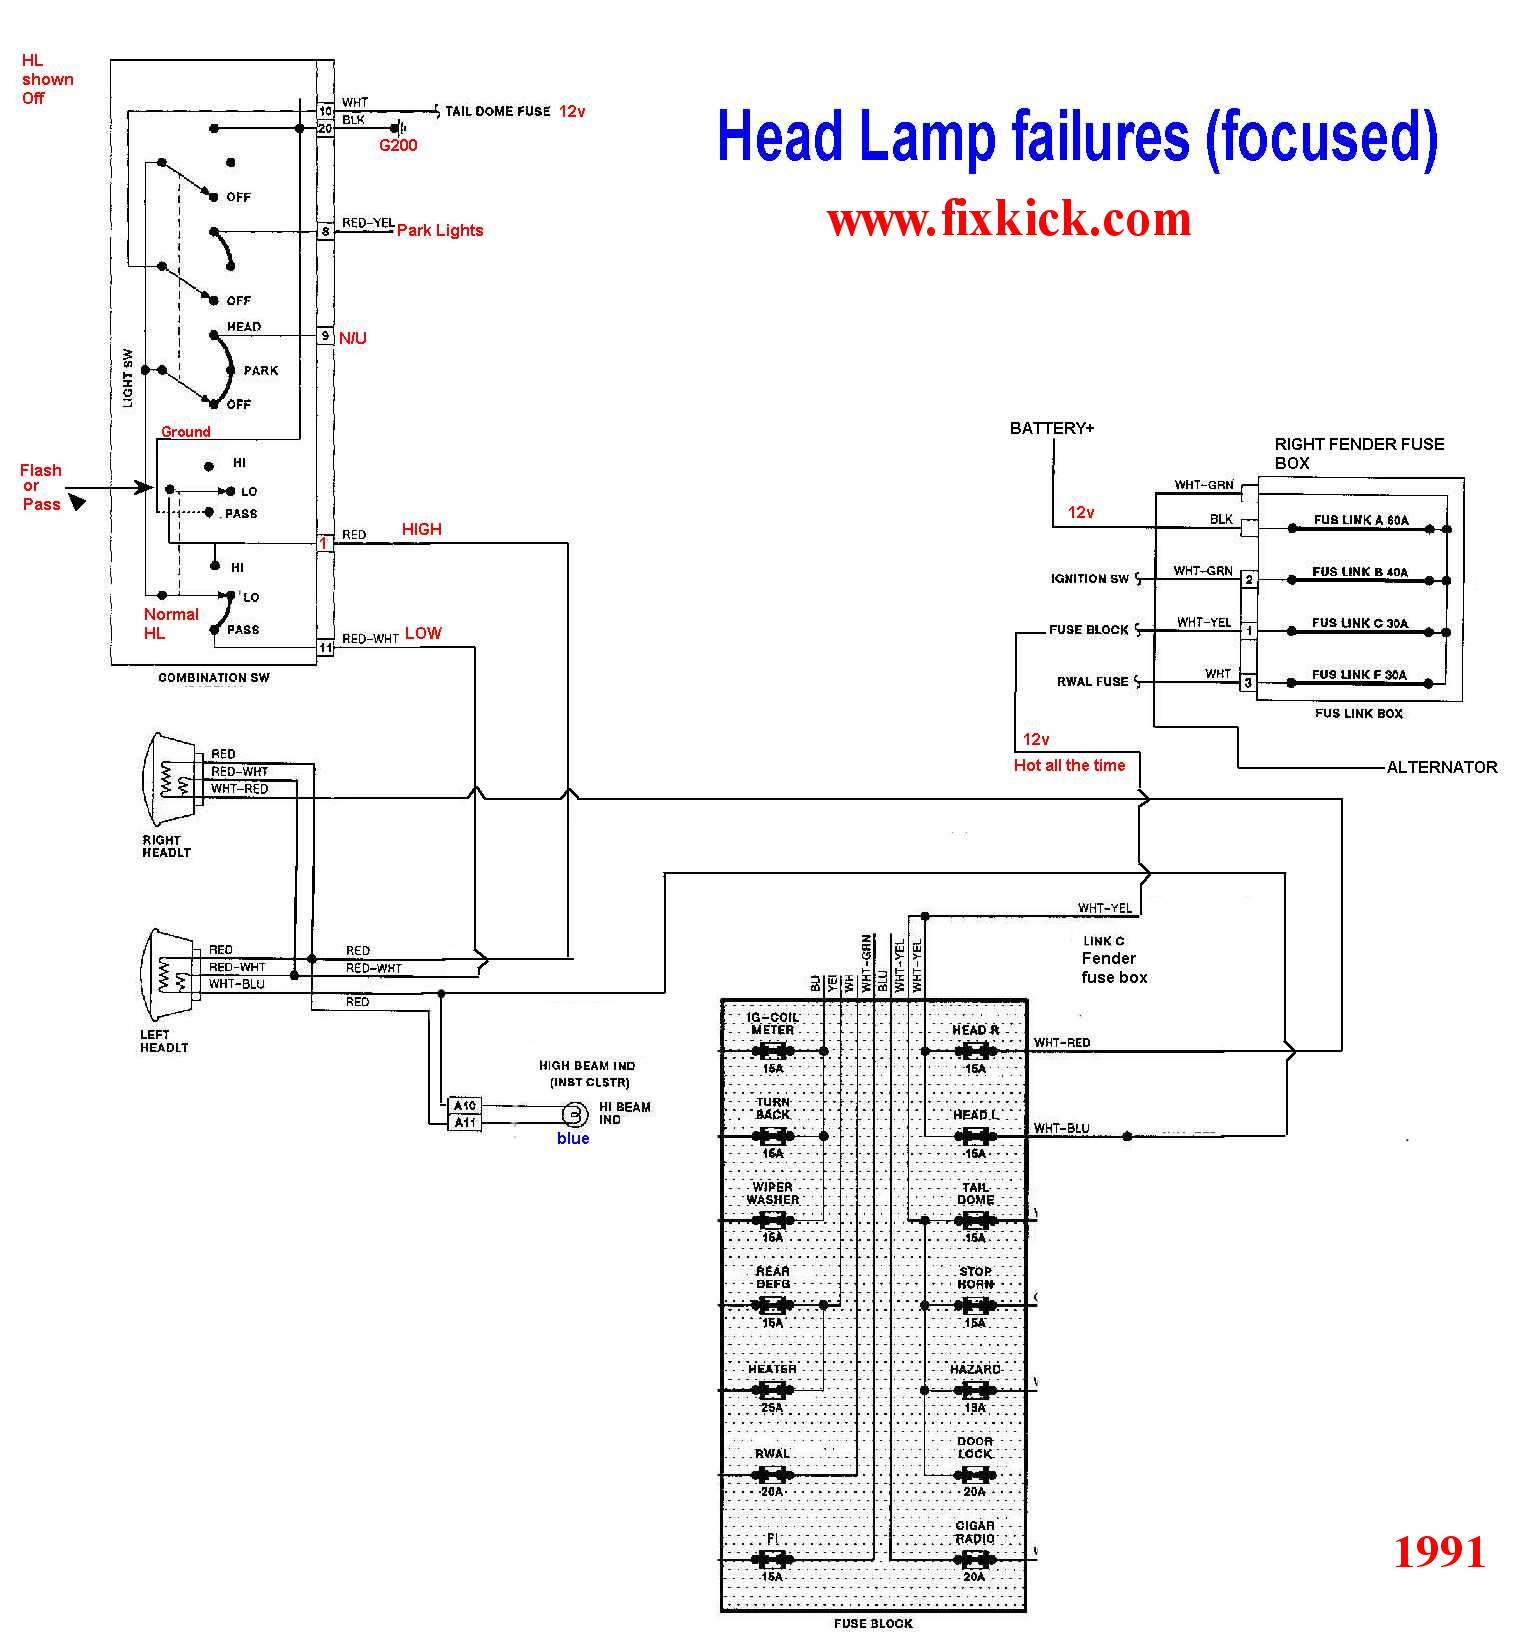 HL1A geo tracker wiring diagram 92 geo tracker wiring diagram \u2022 free wiring diagram for 1994 geo prizm at mifinder.co